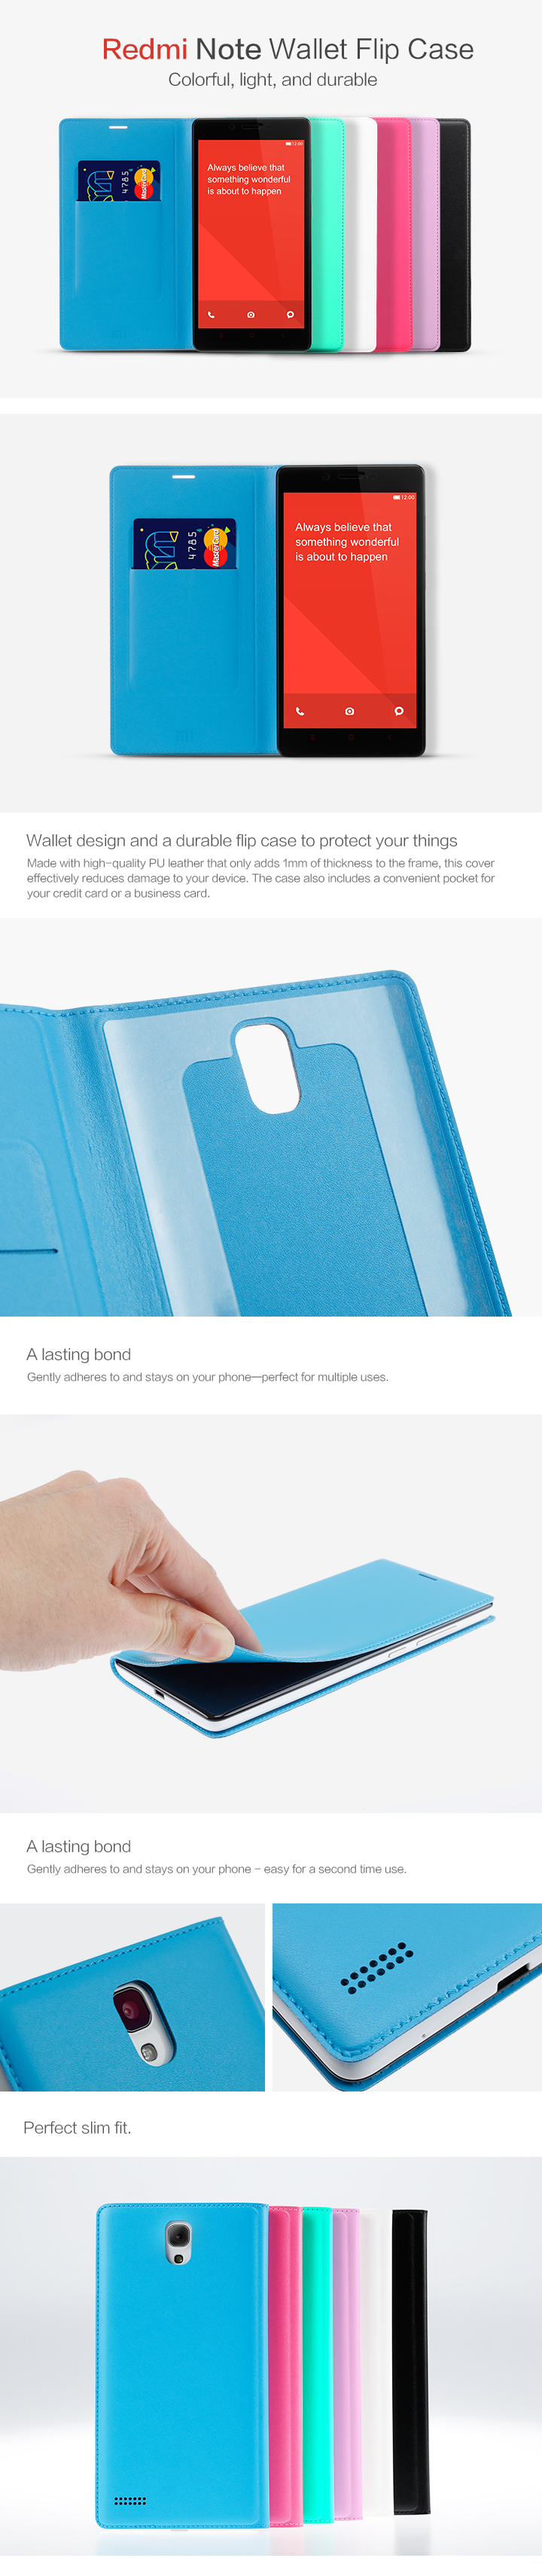 redmi note wallet flip case